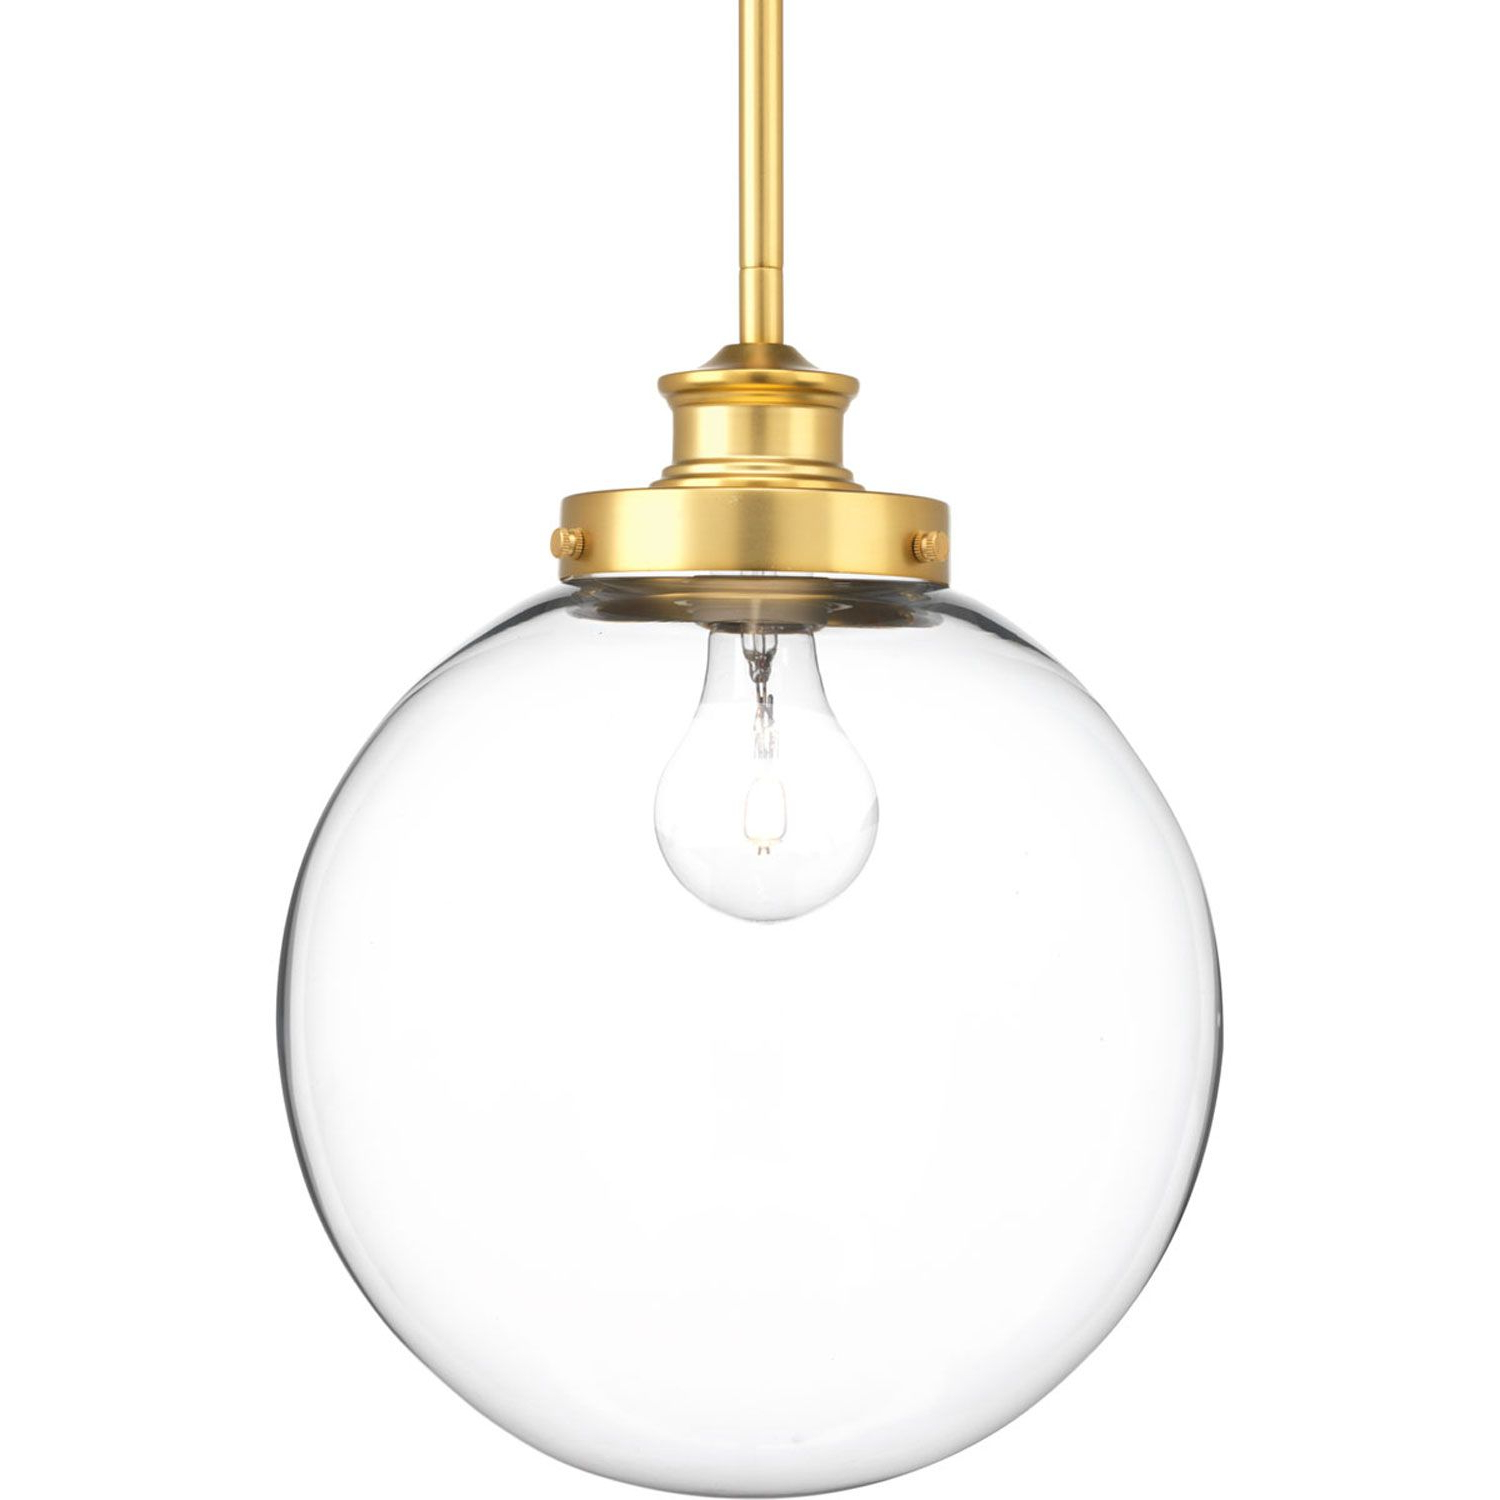 2020 P5070 137 Penn Natural Brass 10 Inch One Light Globe Pendant In Gehry 1 Light Single Globe Pendants (Gallery 20 of 20)